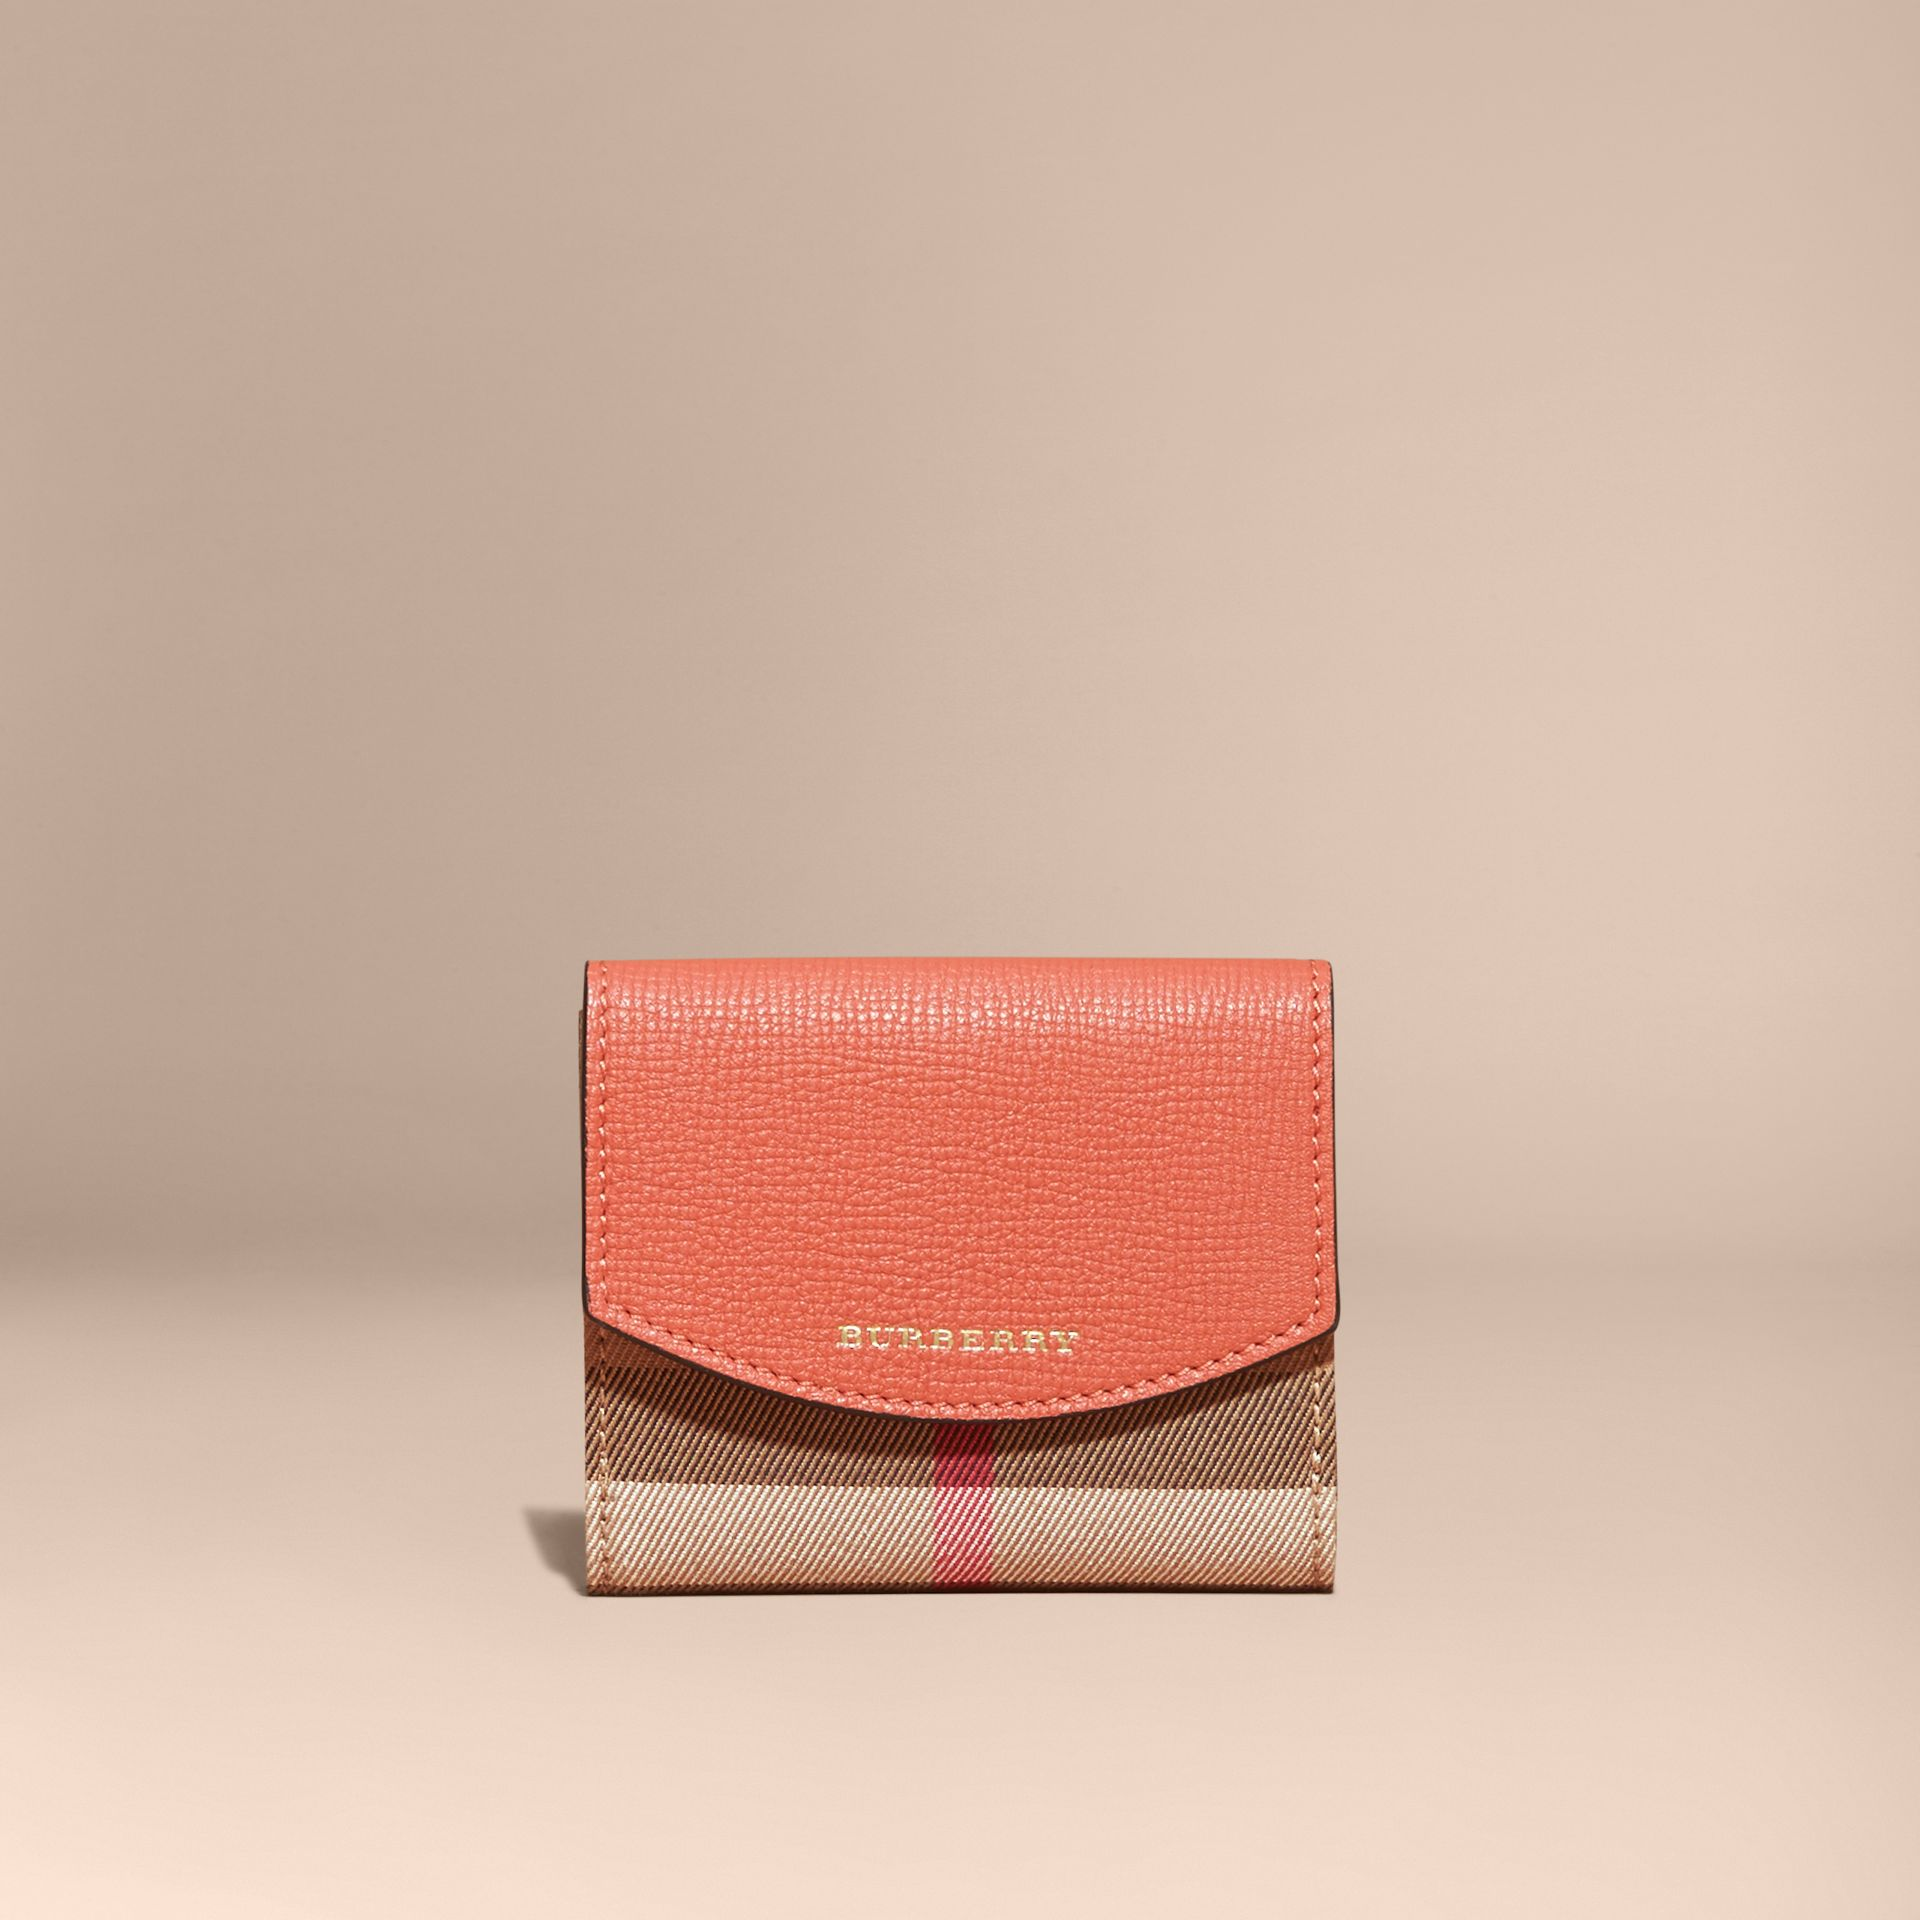 House Check and Leather Wallet in Cinnamon Red - Women | Burberry - gallery image 7